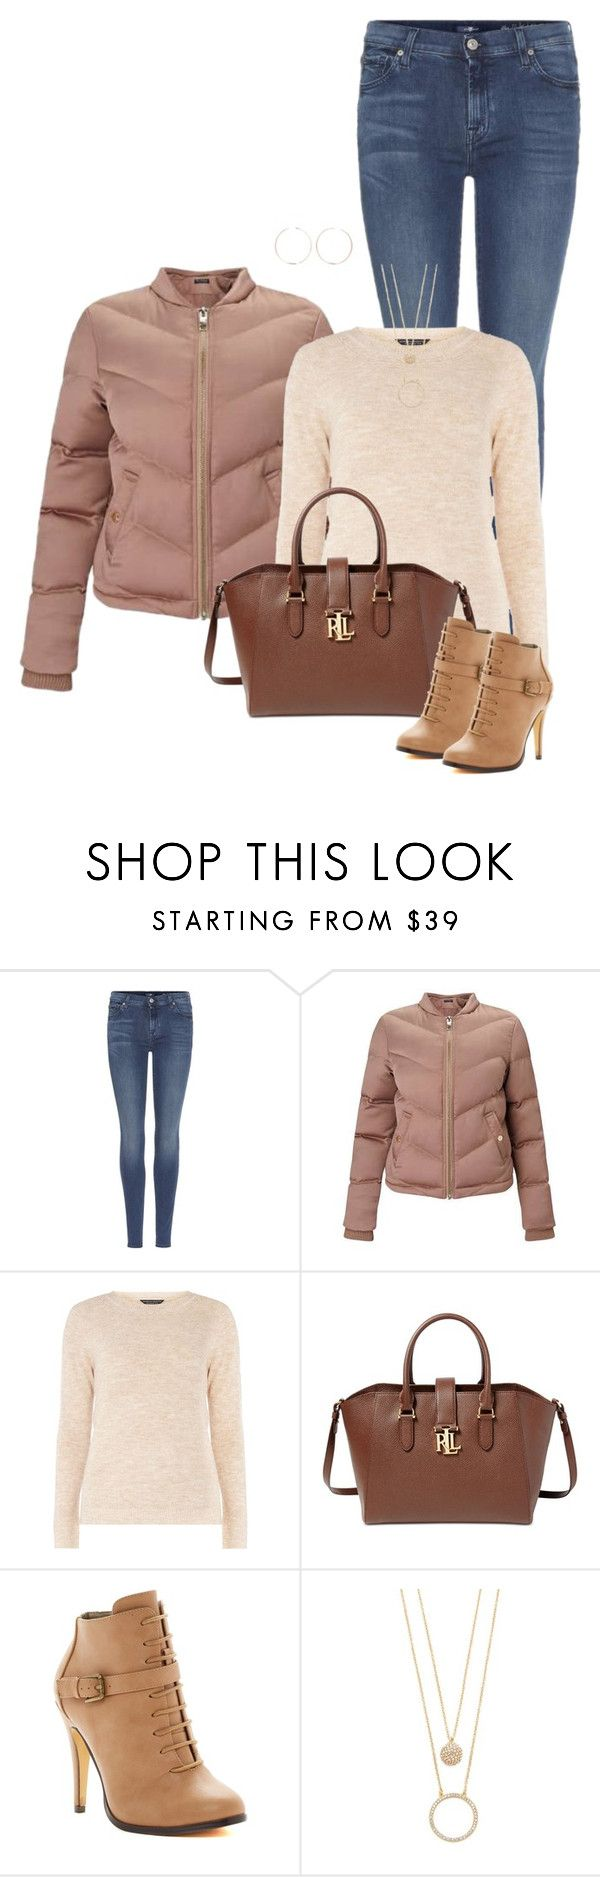 """Puffer"" by ksims-1 ❤ liked on Polyvore featuring 7 For All Mankind, Miss Selfridge, mel, Lauren Ralph Lauren, Michael Antonio, Kate Spade and Anita Ko"